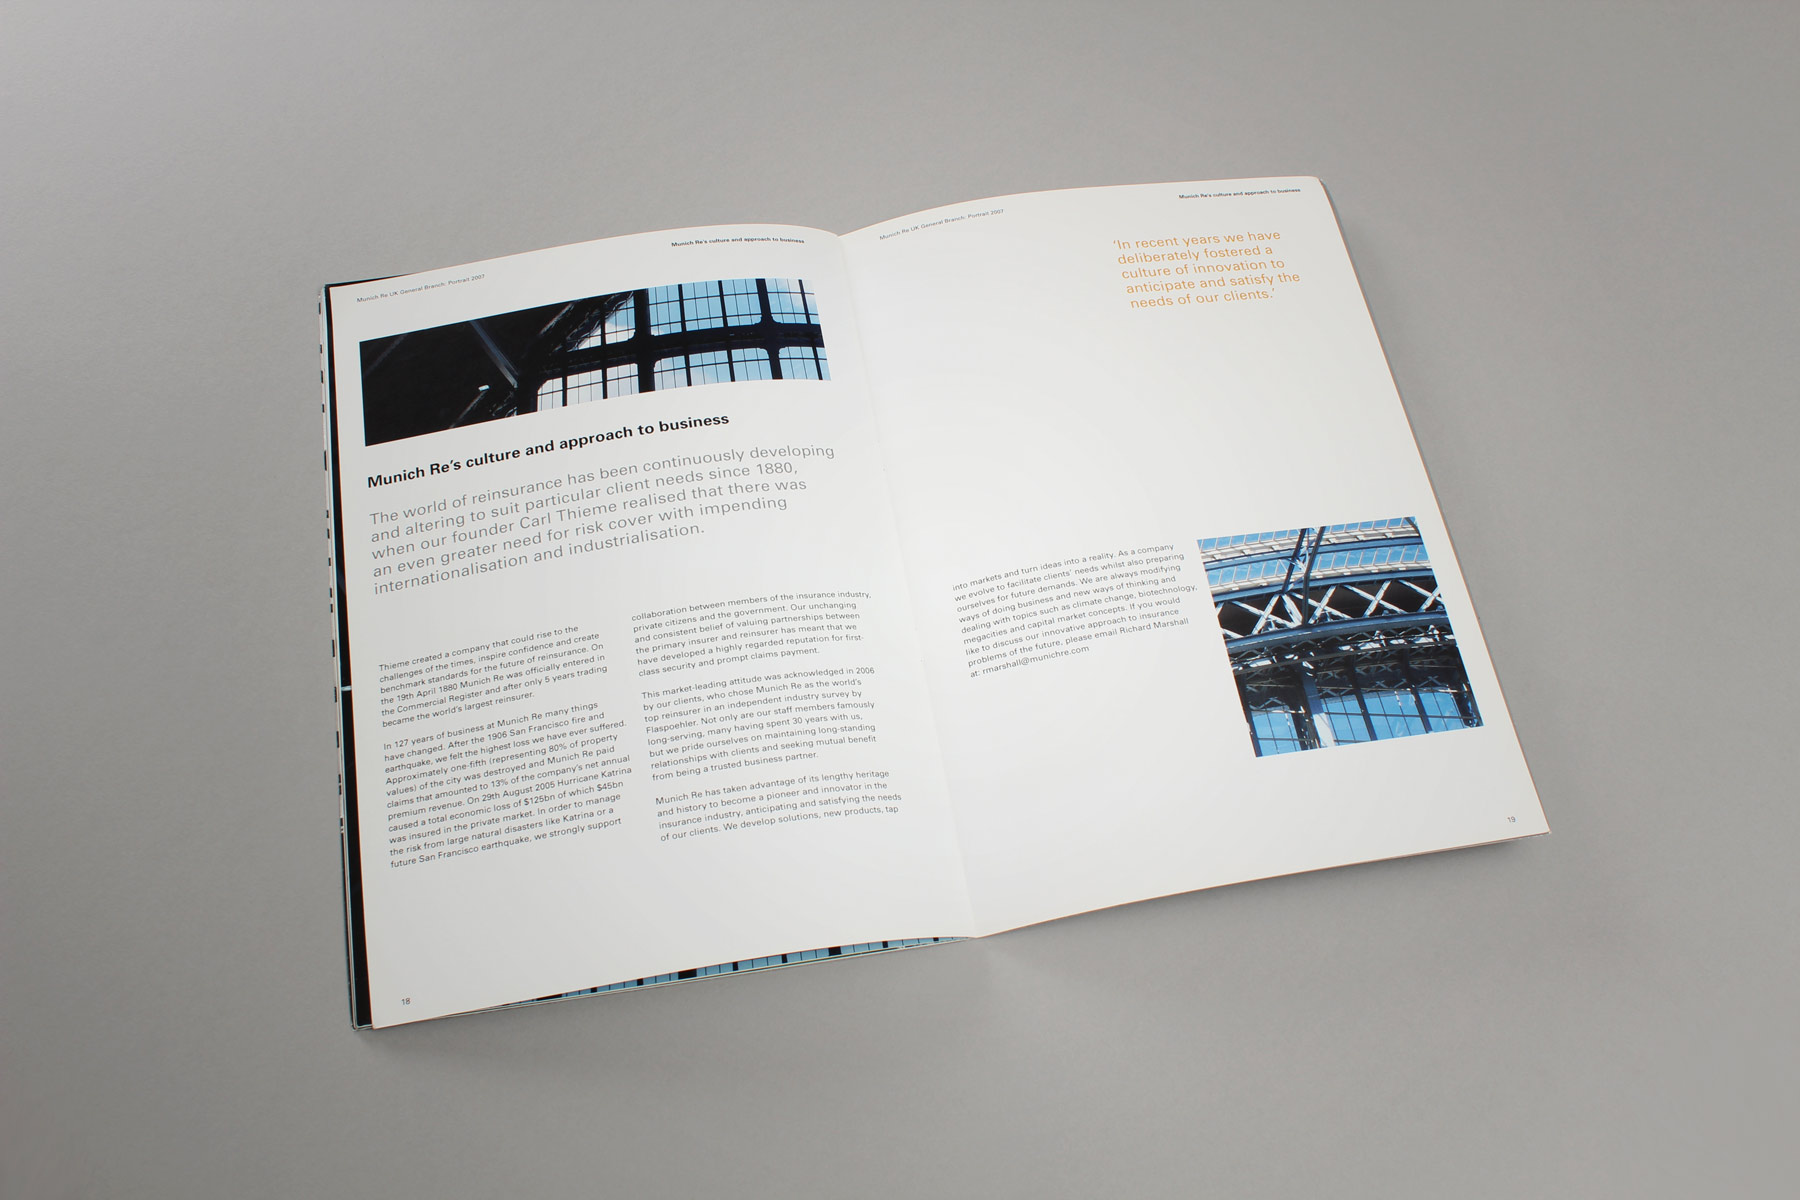 The design concept also neatly dovetailed into the formal publication guidelines that we were directed to work within.